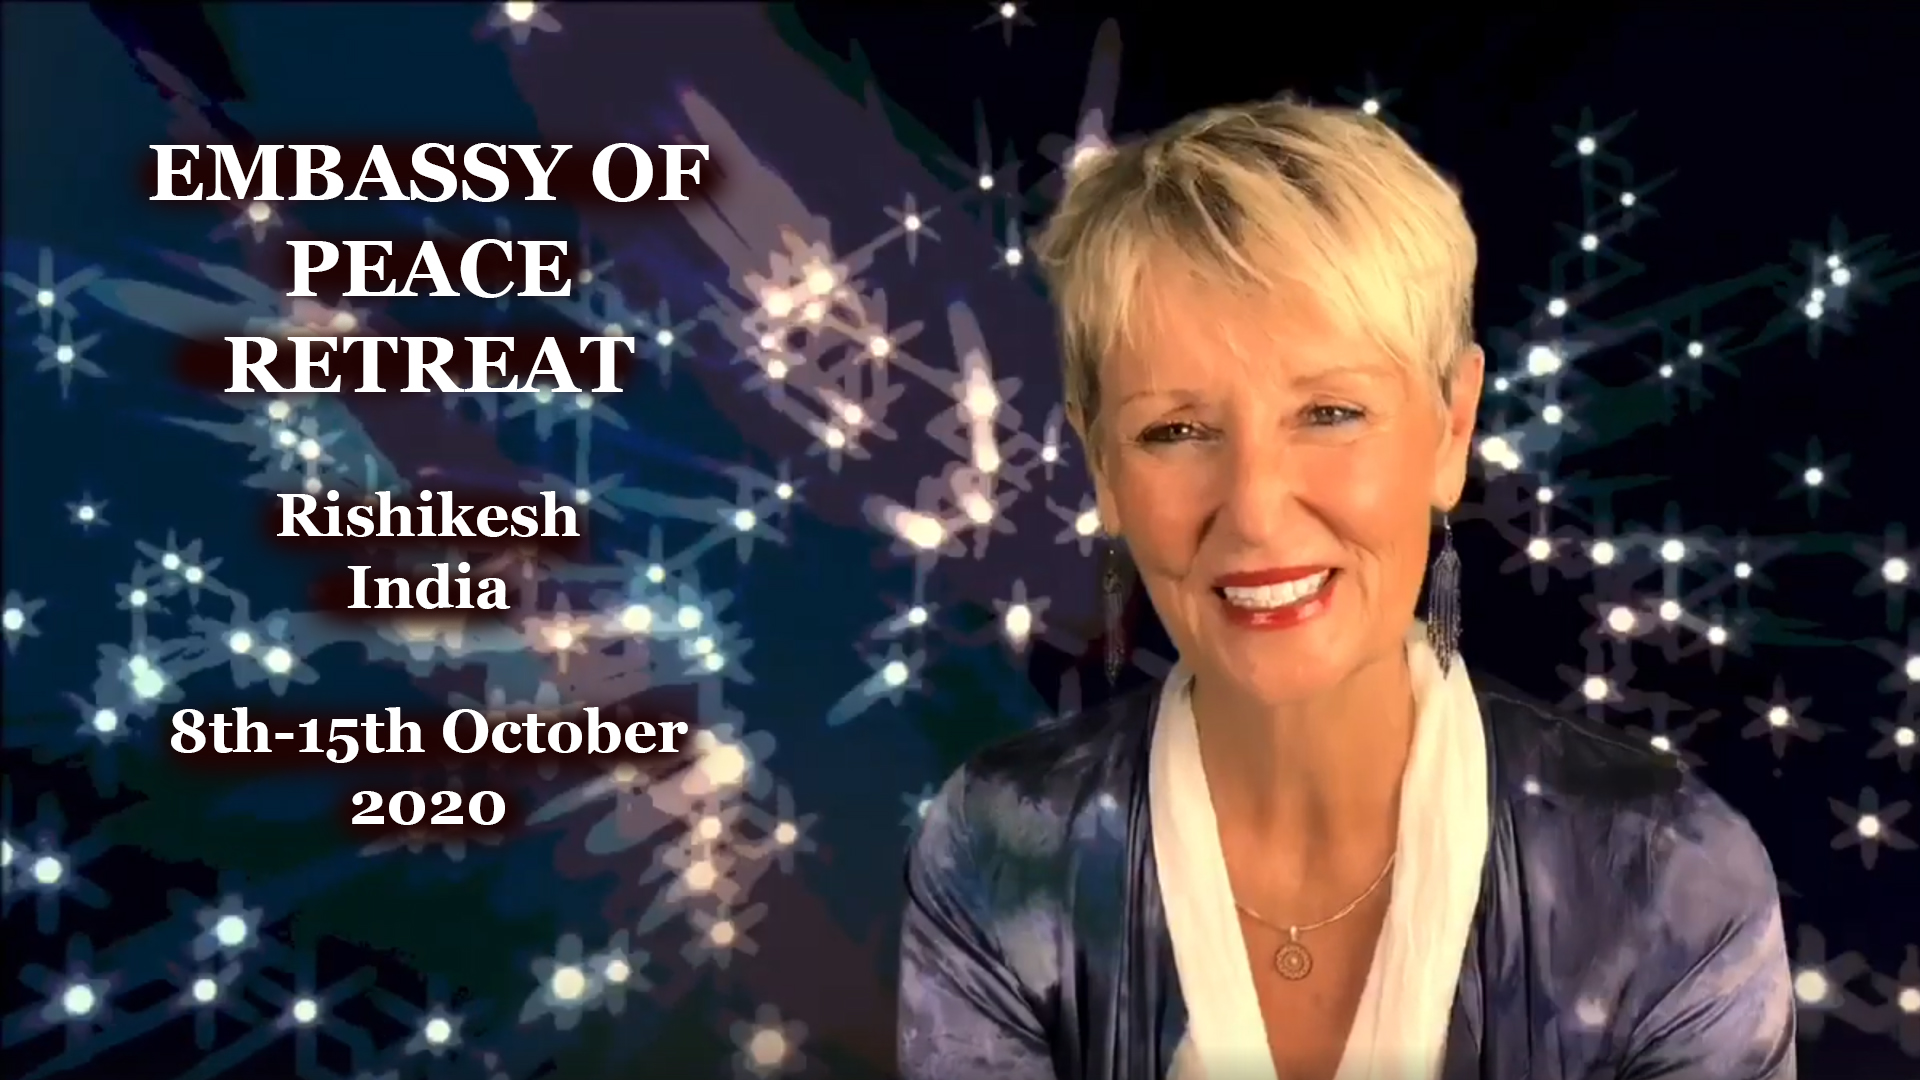 2021 Embassy of Peace Retreat in India